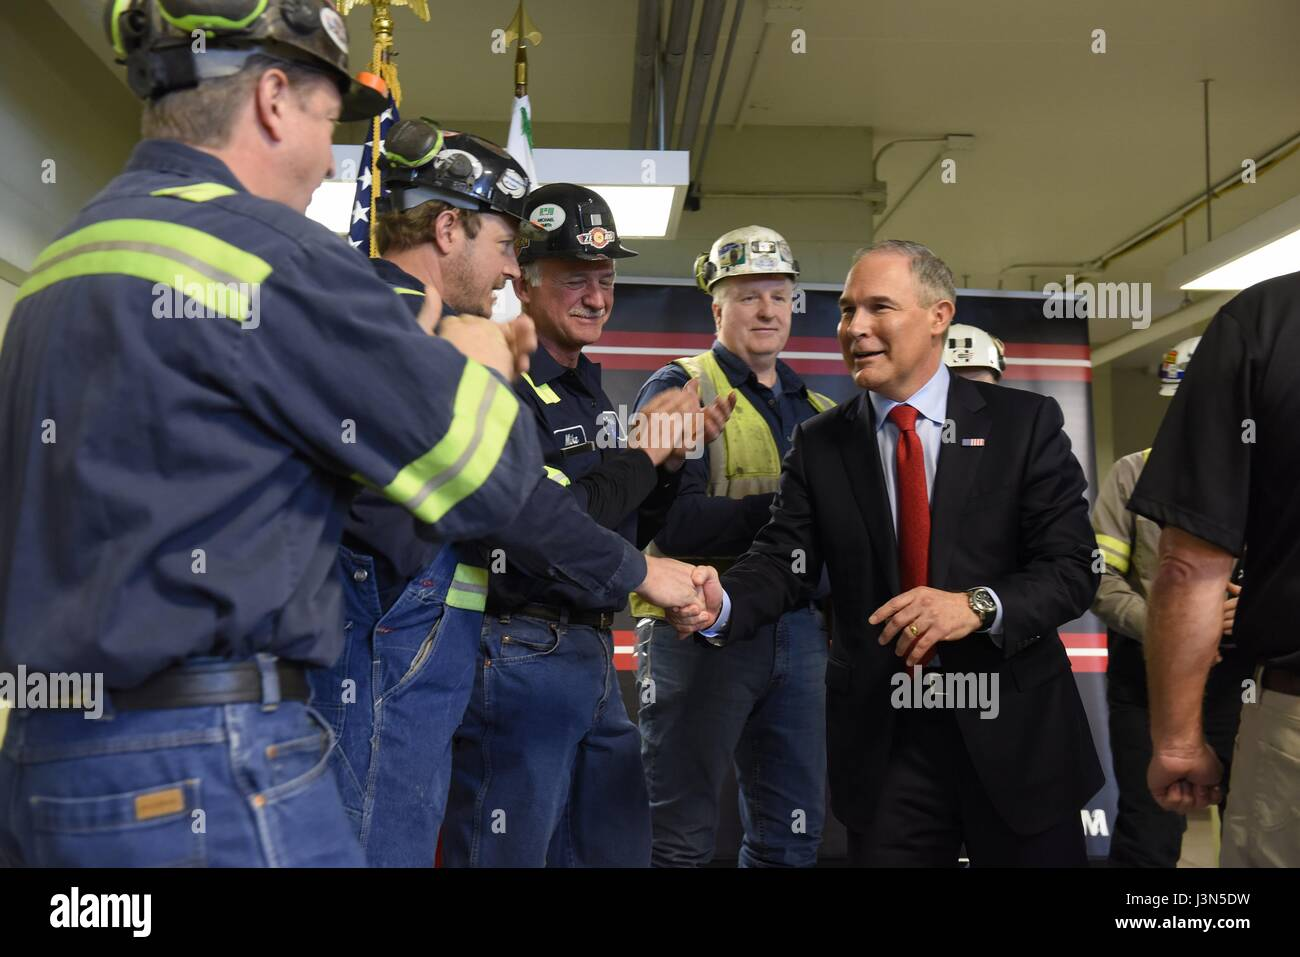 U.S. Environmental Protection Agency Administrator Scott Pruitt, right, greets coal miners at the Harvey Mine April Stock Photo